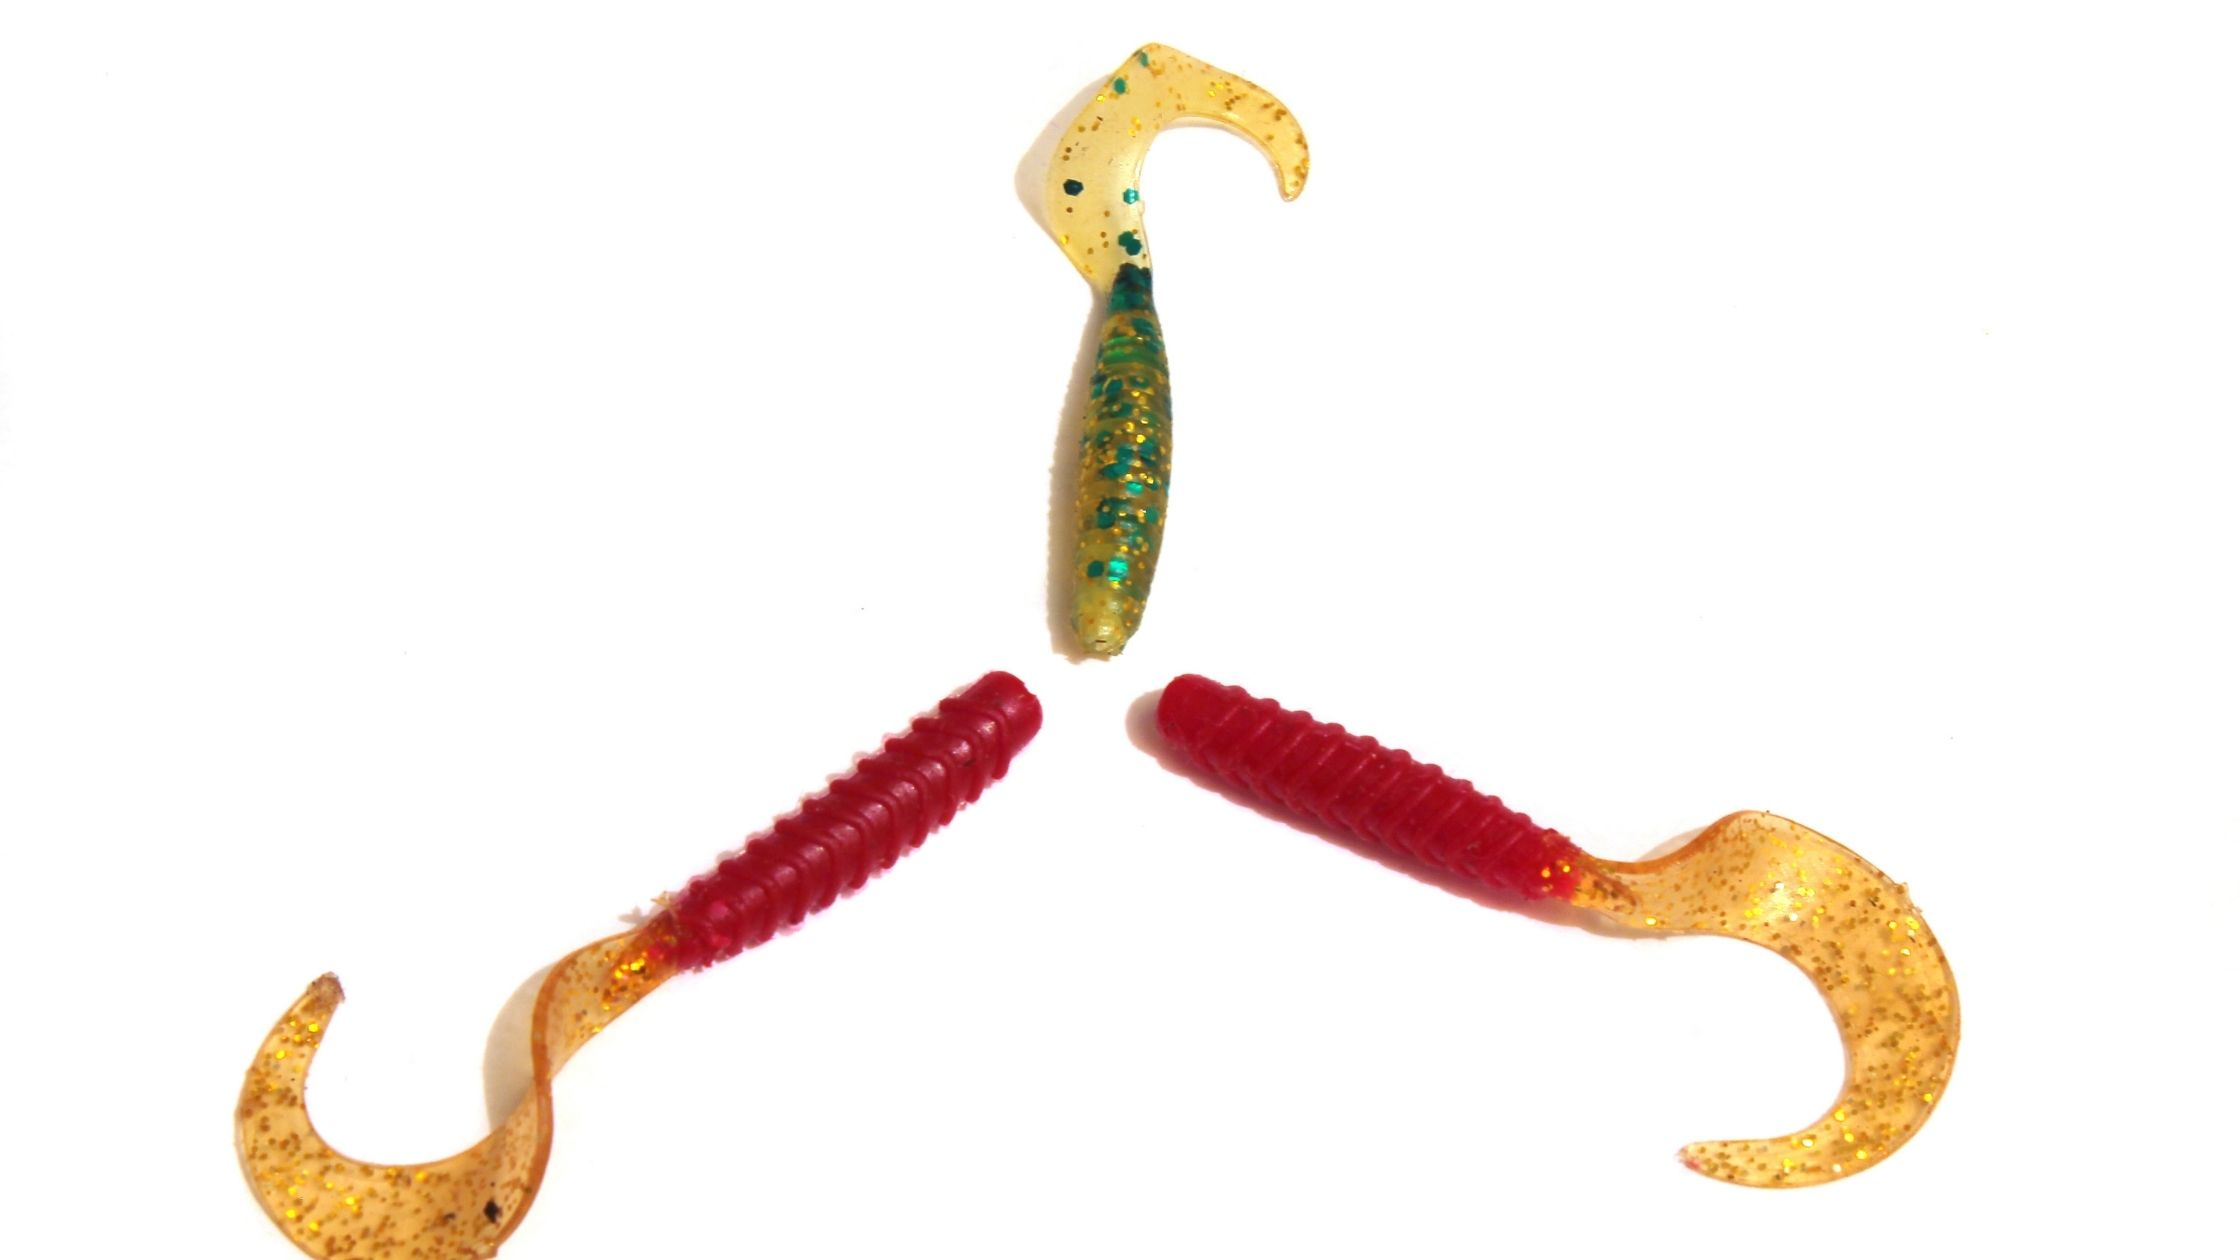 Types of Fishing Worms: Ribbon Tails